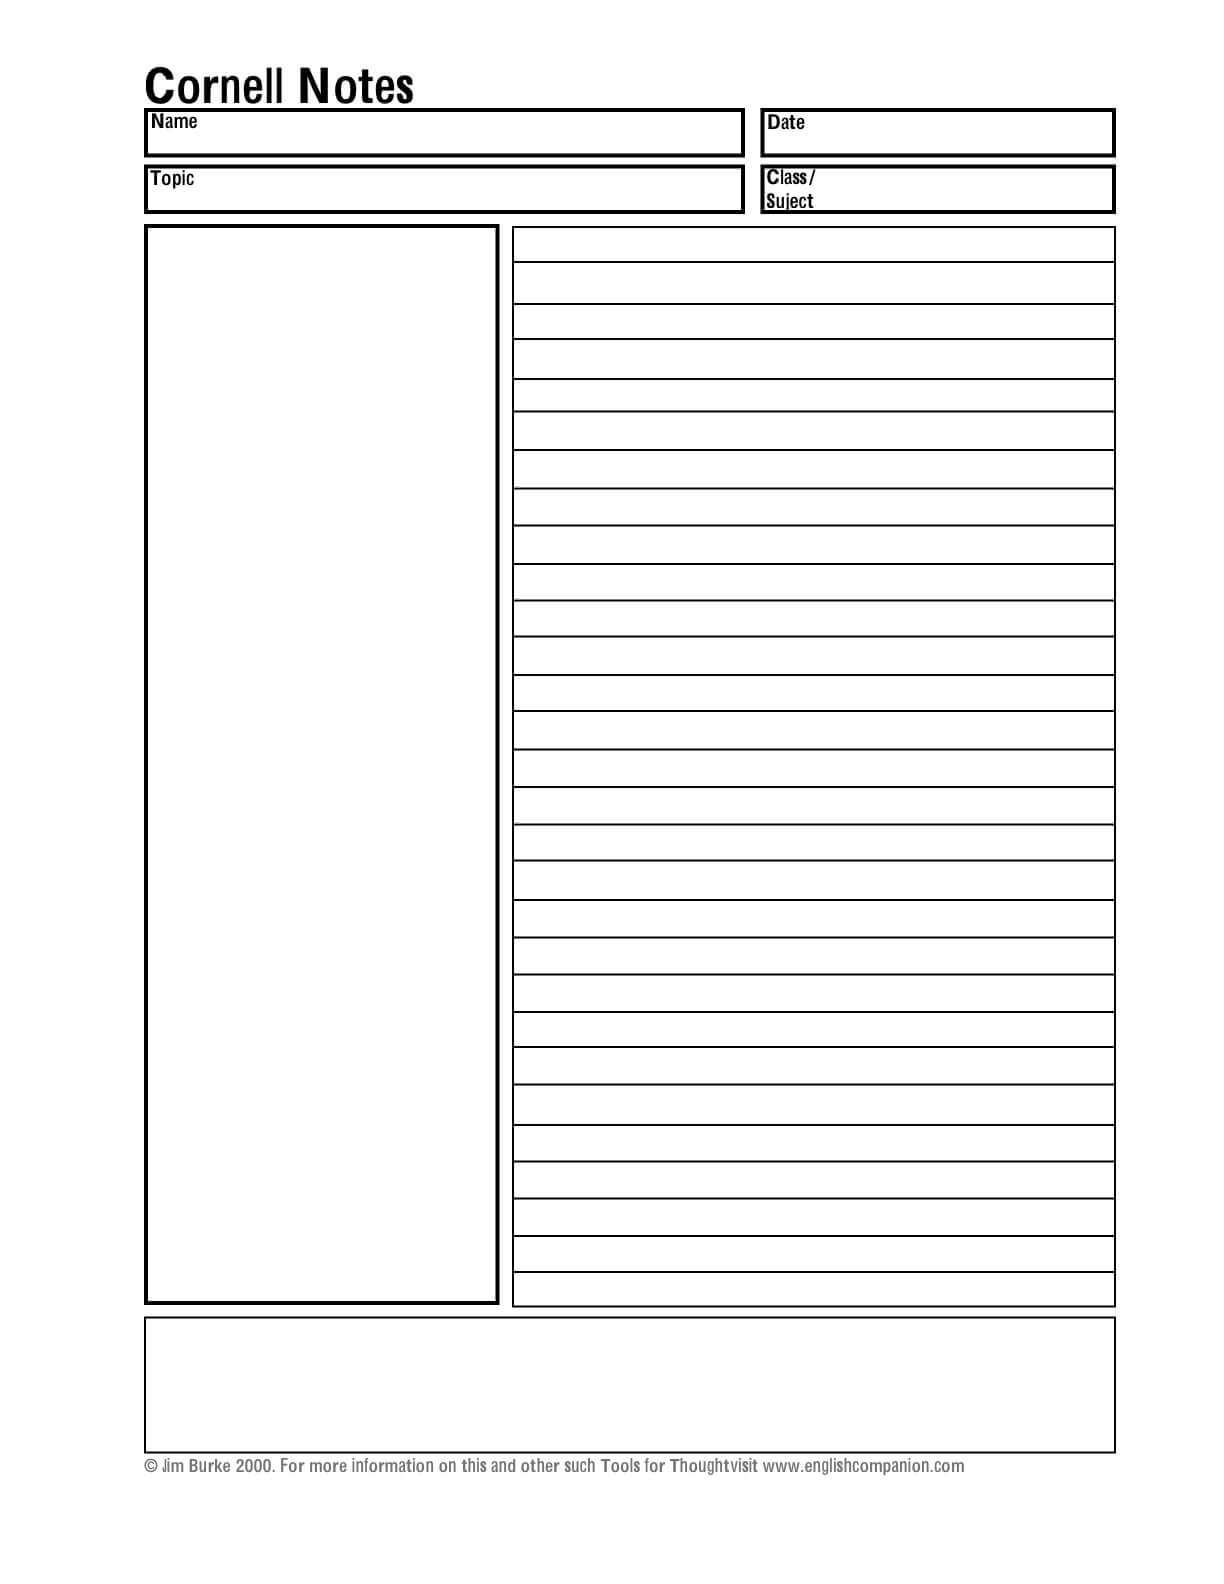 Cornell-Notes-Template-Word-Abq2Iv2D – وادي المشمش in Cornell Note Template Word